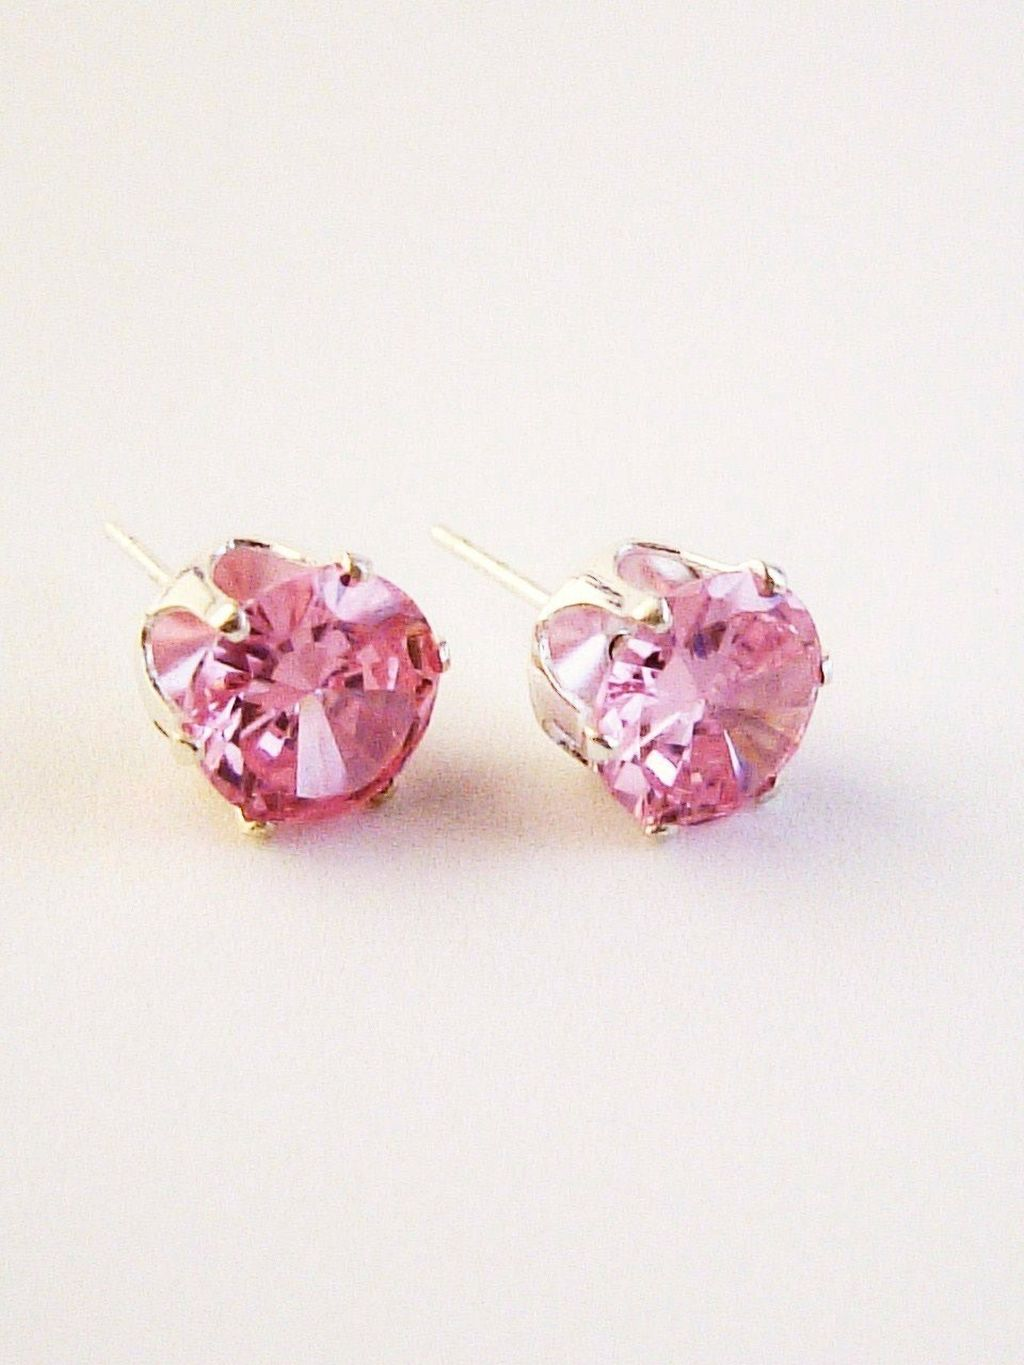 Pink Zircon Round Cut Silver Stud Earrings Genuine CZ Cubic Zirconia